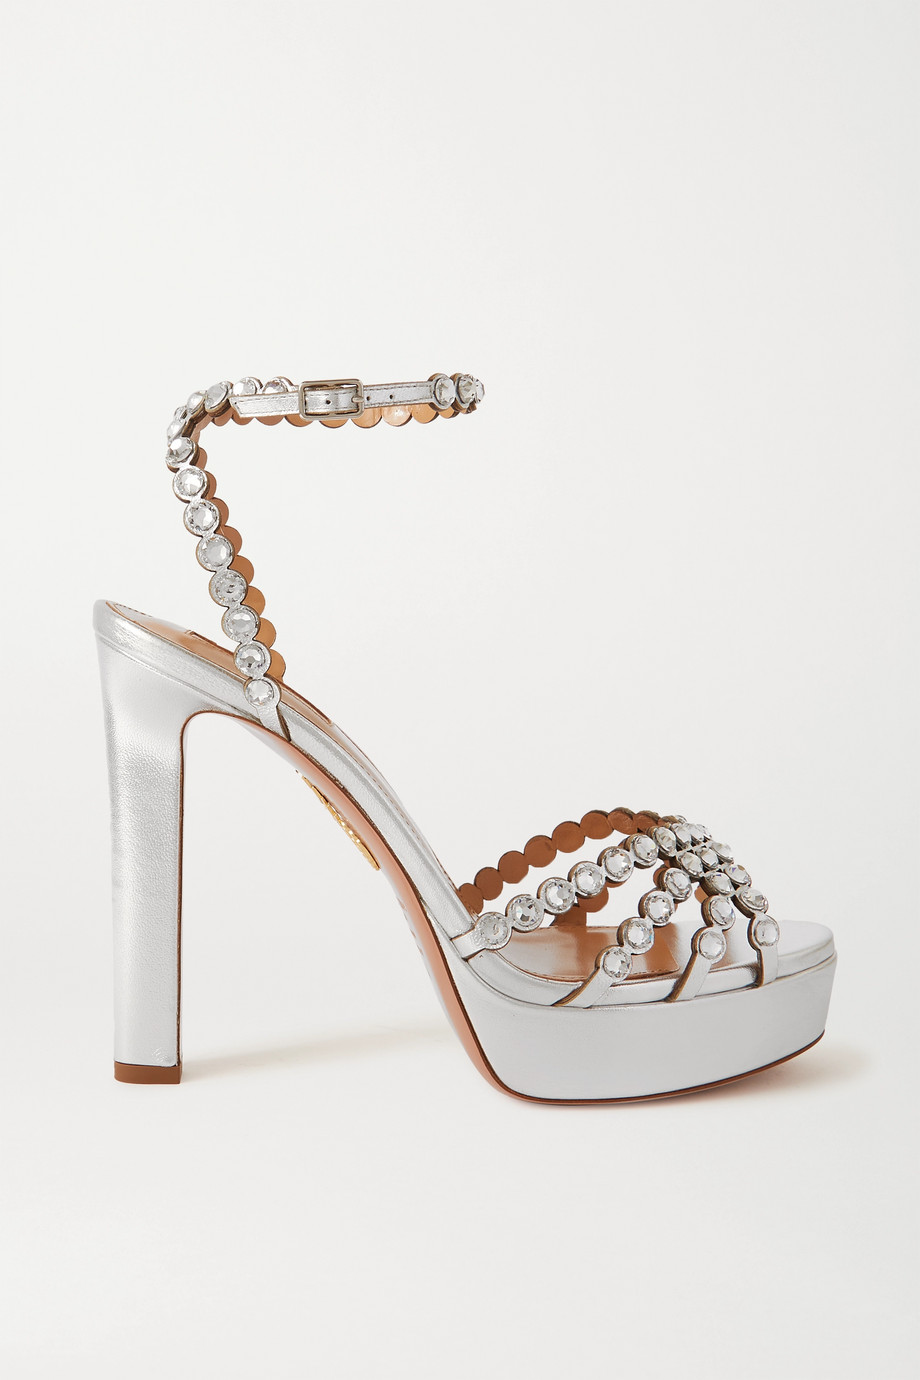 Aquazzura Tequila Plateau 120 crystal-embellished metallic leather platform sandals